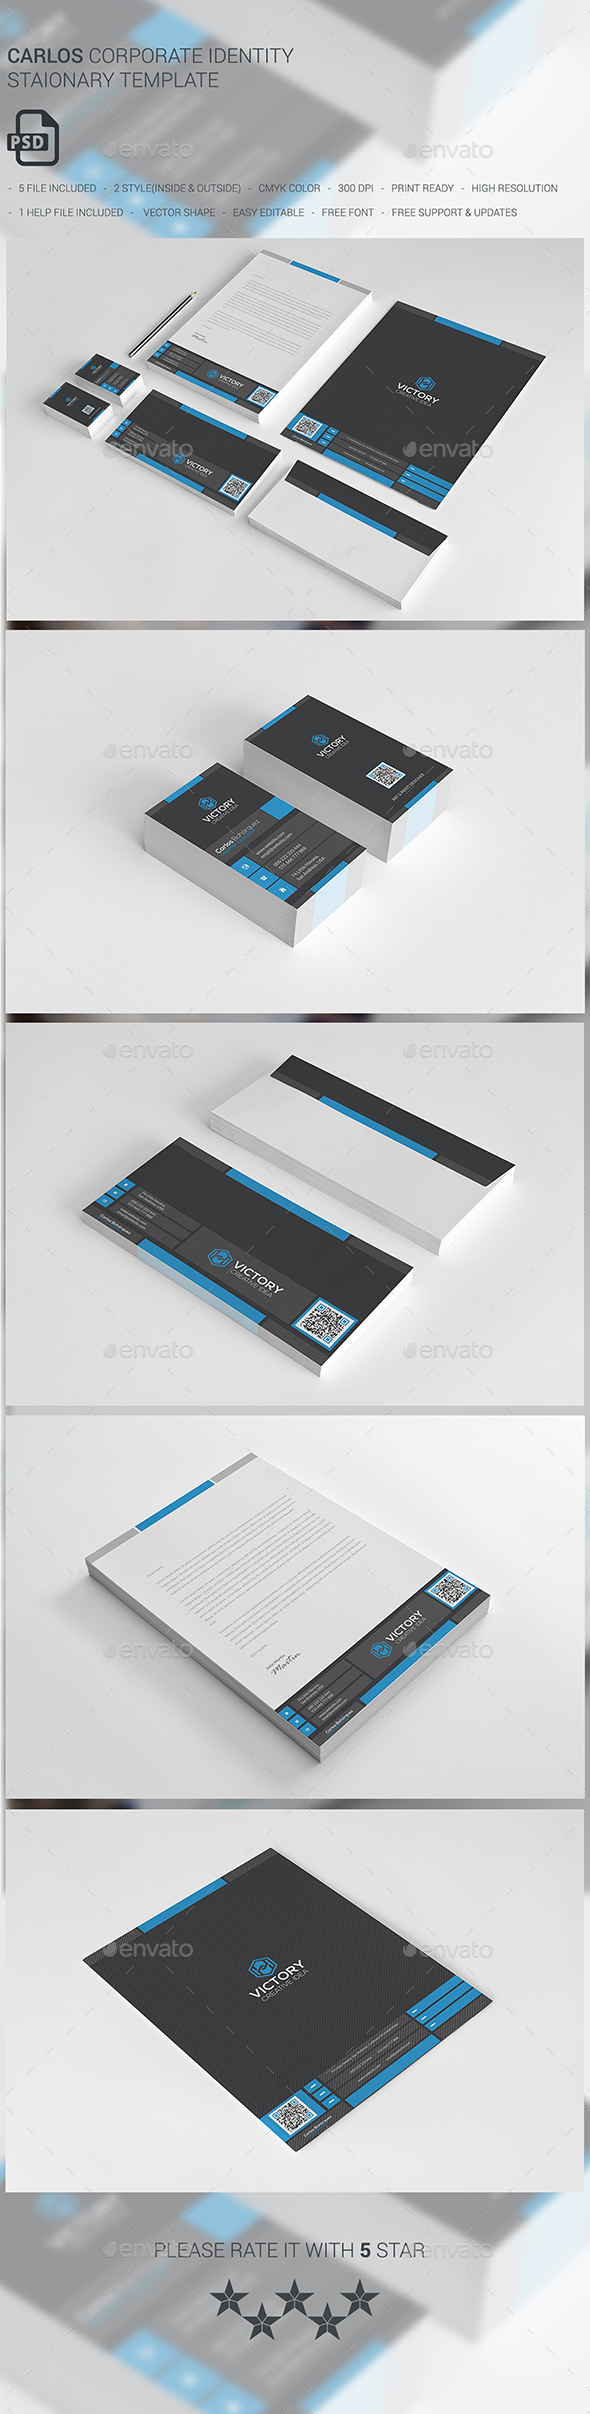 Carlos Corporate Stationary - Stationery Print Templates